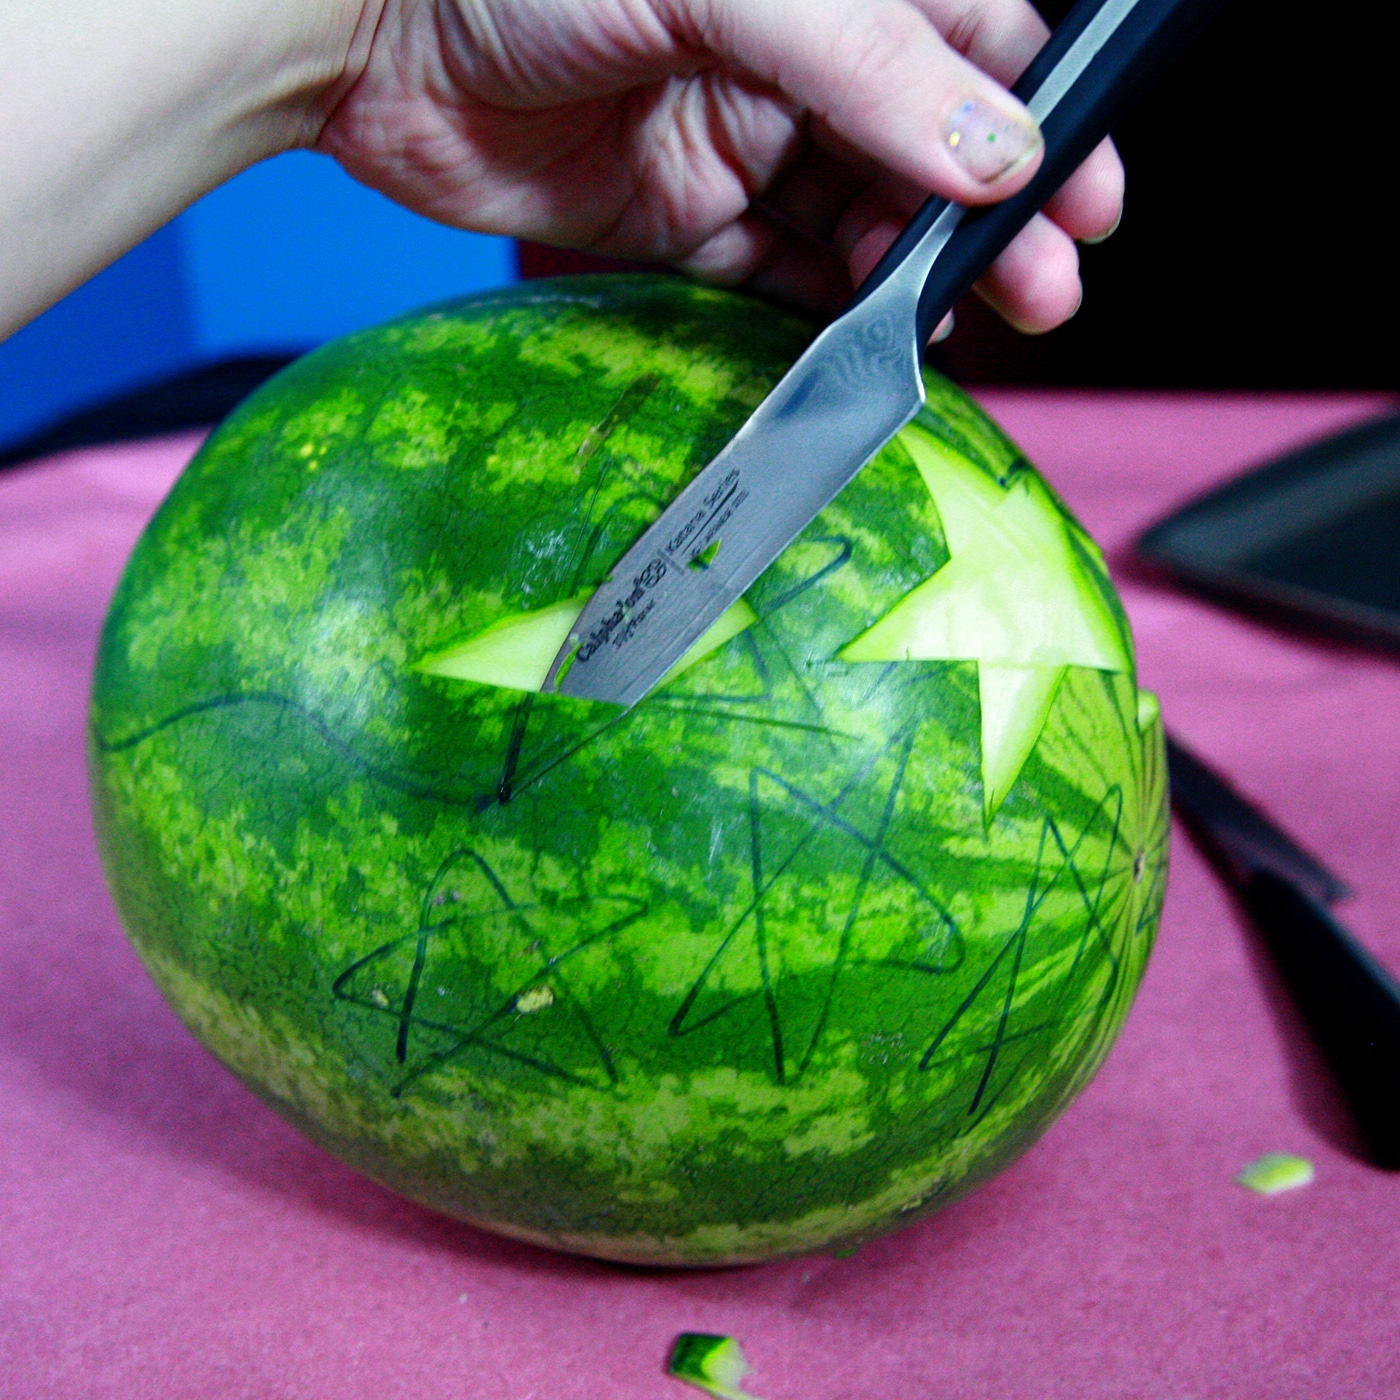 A hand holds a paring knife up to a cut made in a watermelon.